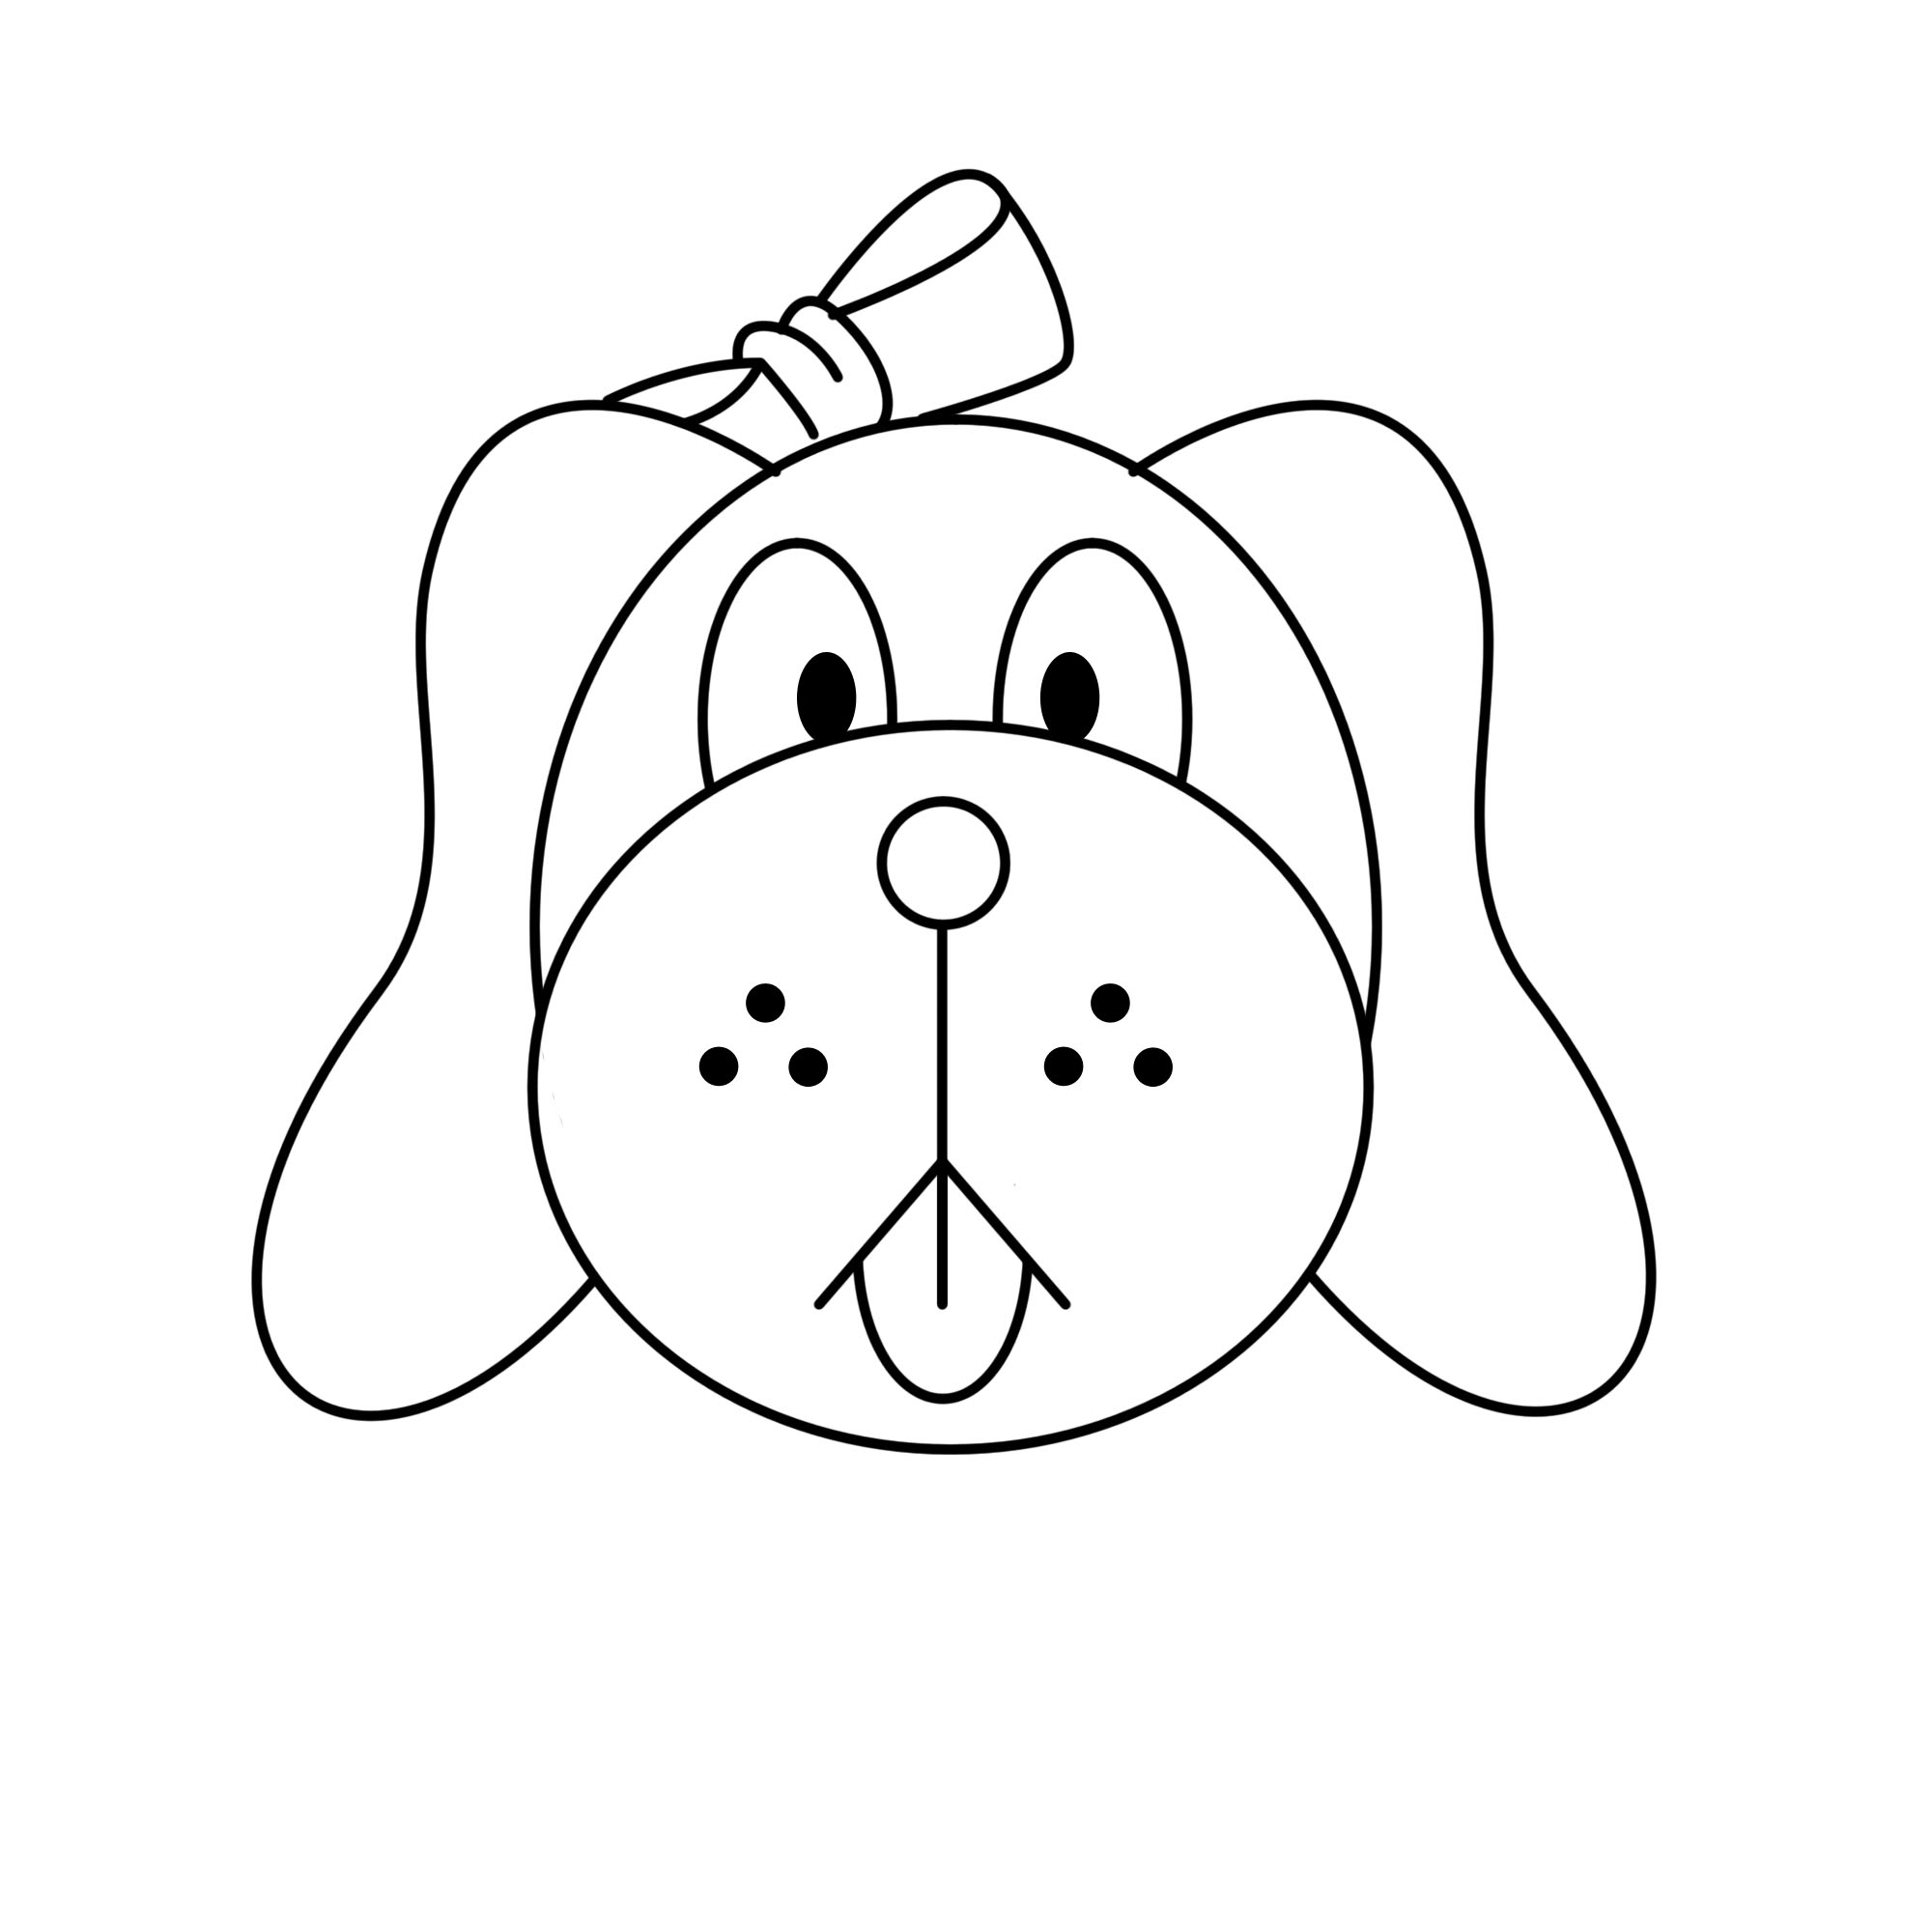 Puppy Dog Face Drawing at GetDrawings com | Free for